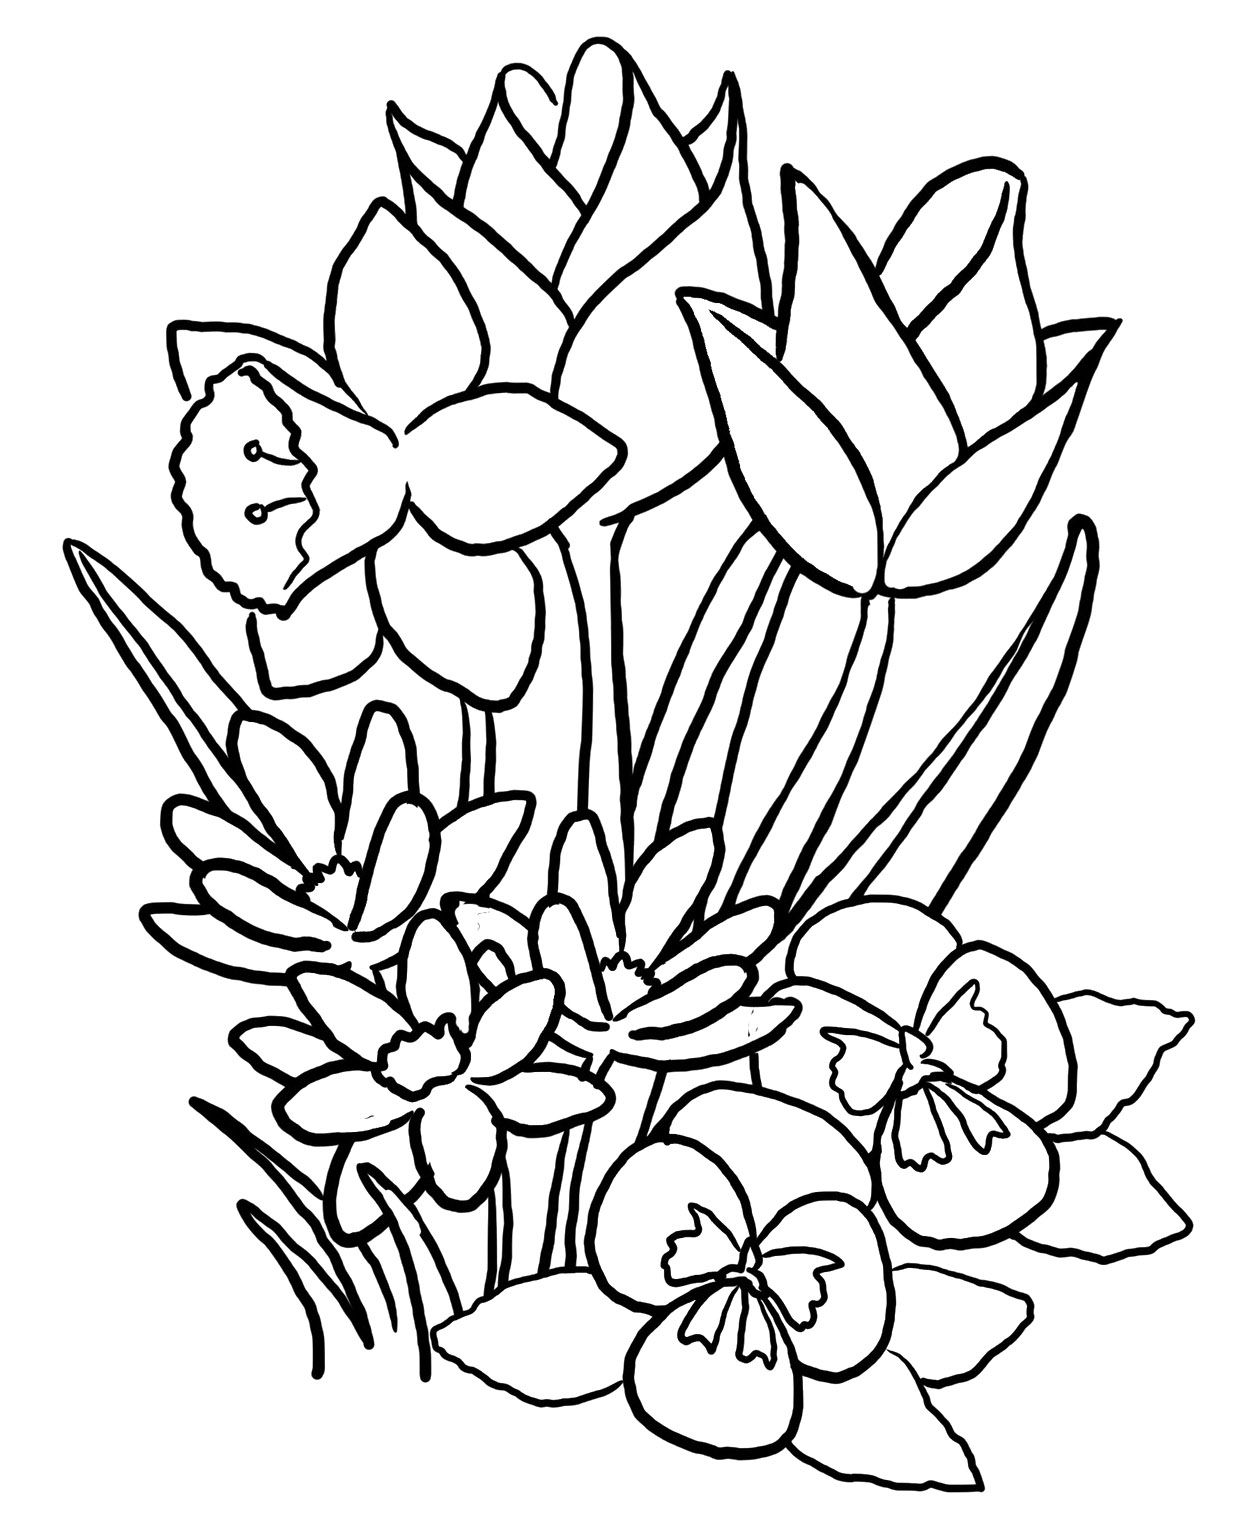 spring coloring pages, printable spring coloring pages ...